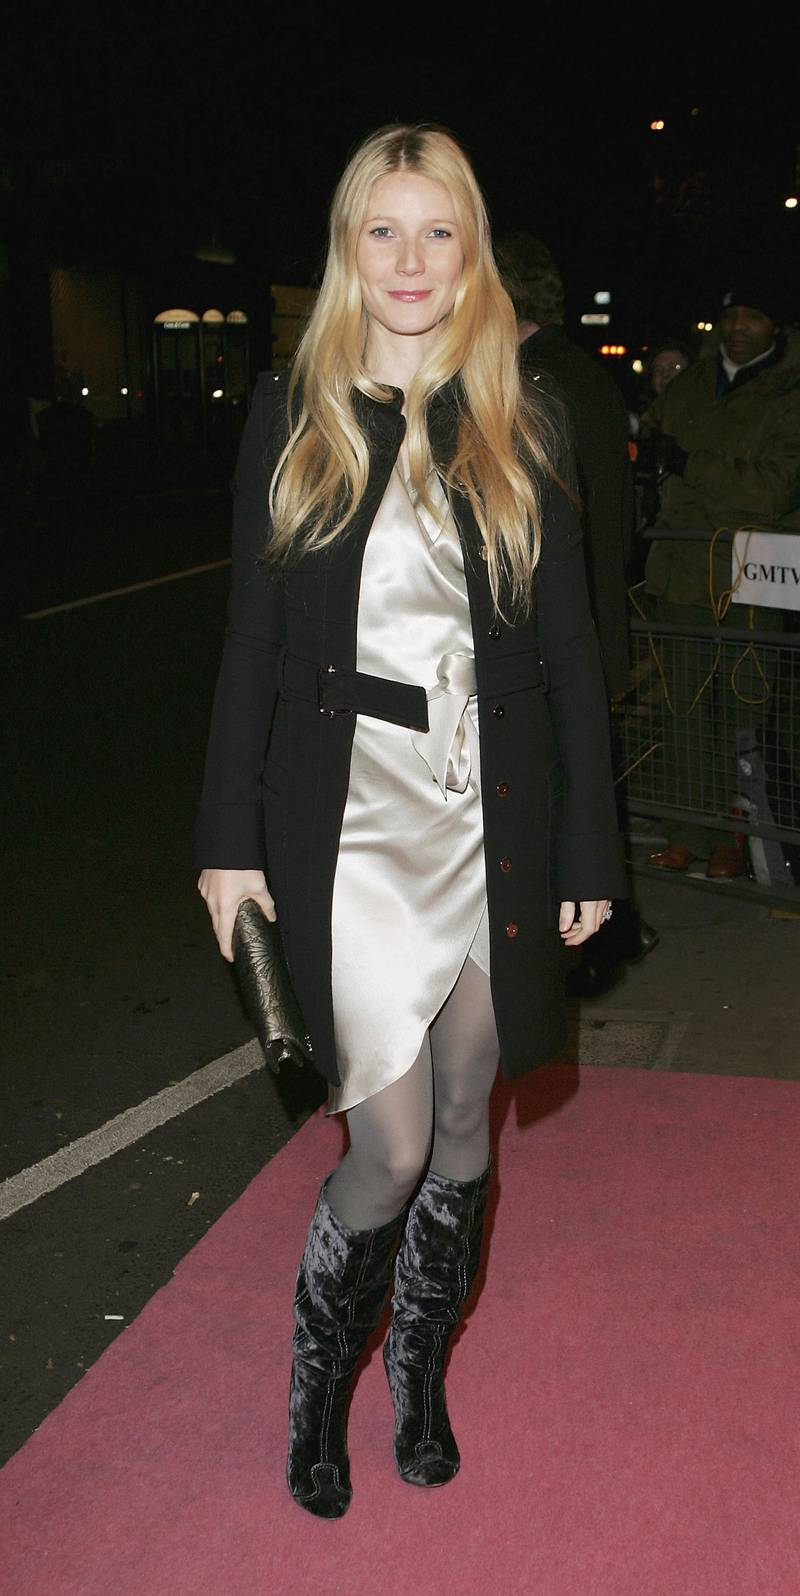 """LONDON - NOVEMBER 29:  Gwyneth Paltrow arrives at the UK TV documentary premiere of Madonna's new confessional Channel 4 documentary """"I'm Going To Tell You A Secret"""" at the Chelsea Cinema on November 29, 2005 in London, England. The programme. Transmitting on December 1, is the first Madonna confessional since 1991's controversial Madonna: Truth Or Dare documentary, profiling the Blonde Ambition tour.  (Photo by MJ Kim/Getty Images)"""